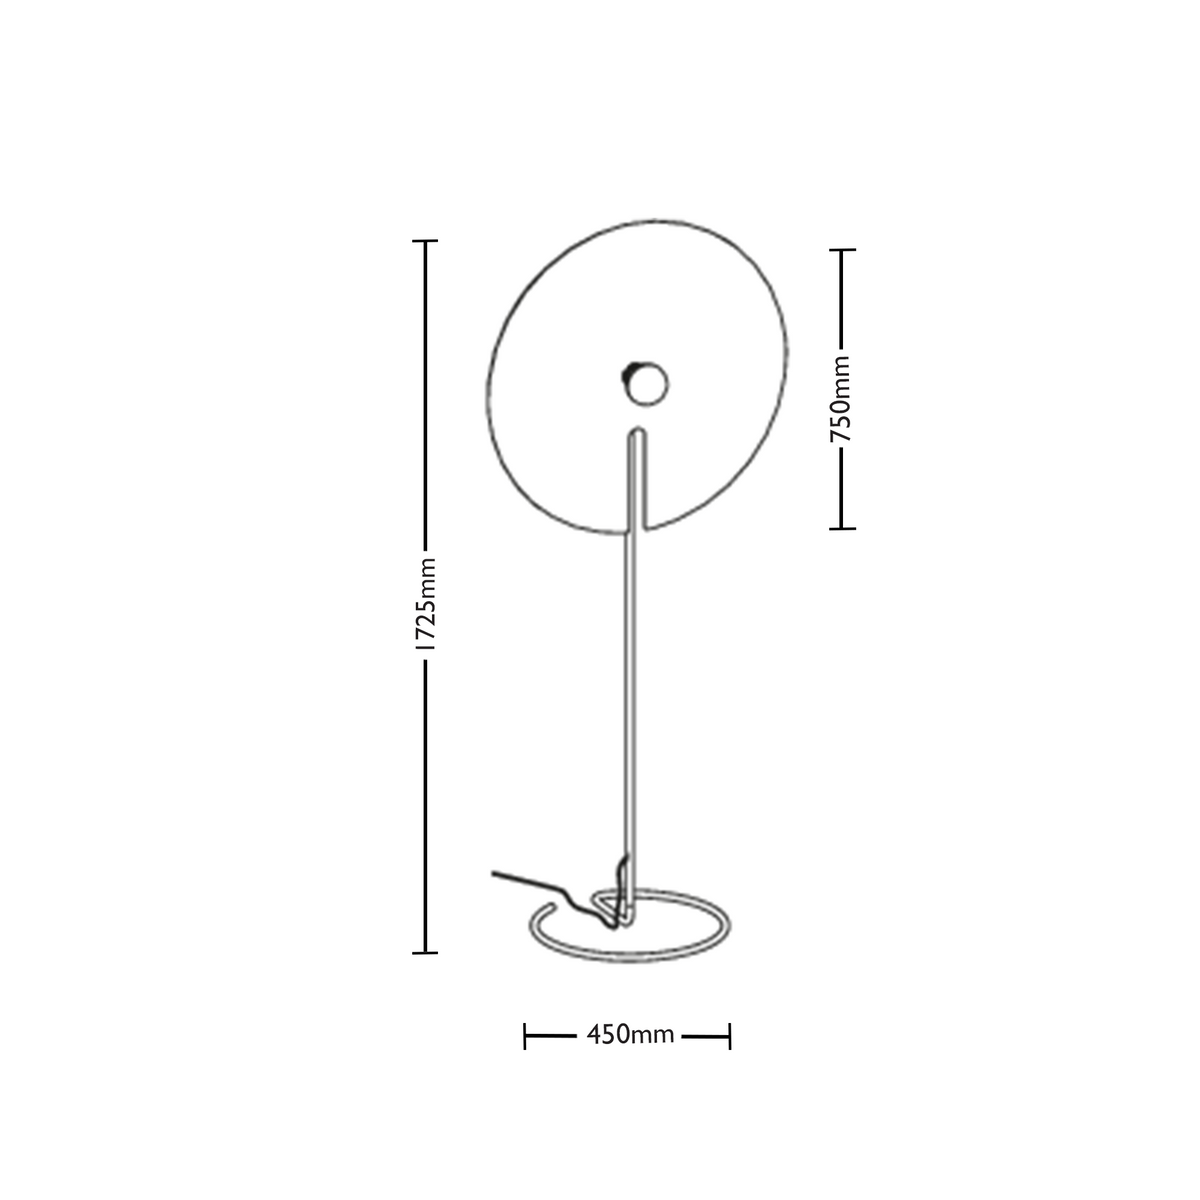 Dimensions for Wever&Ducre Office Mirro Floor Lamp 3.0